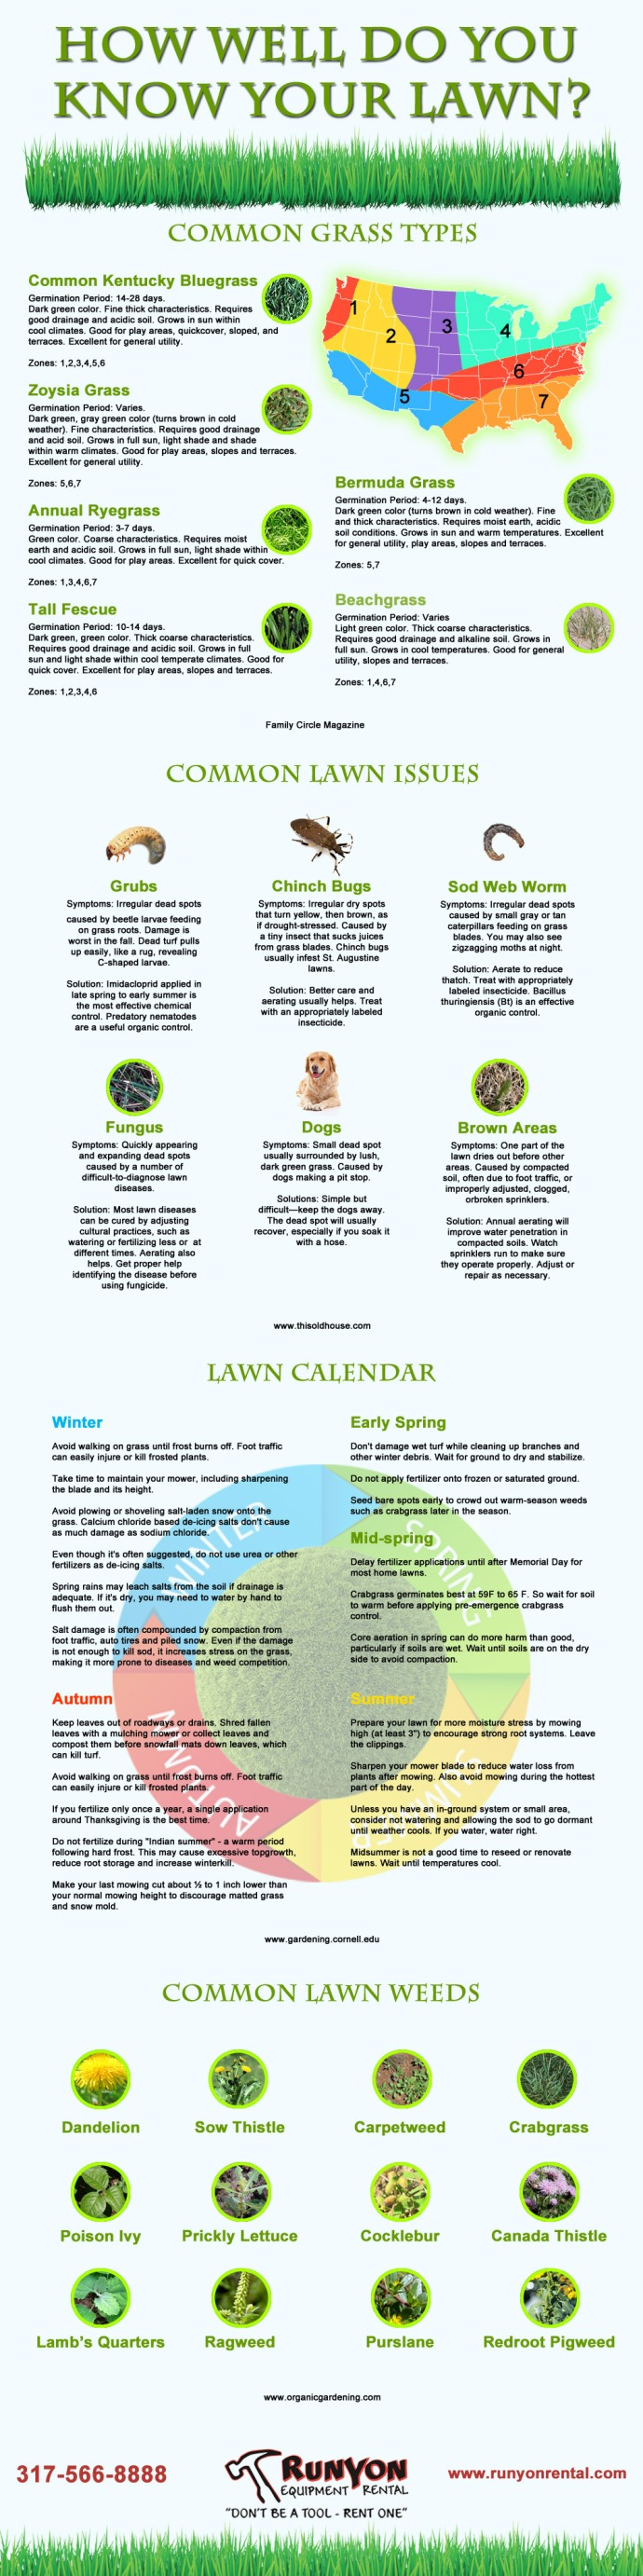 How well do you know your lawn?